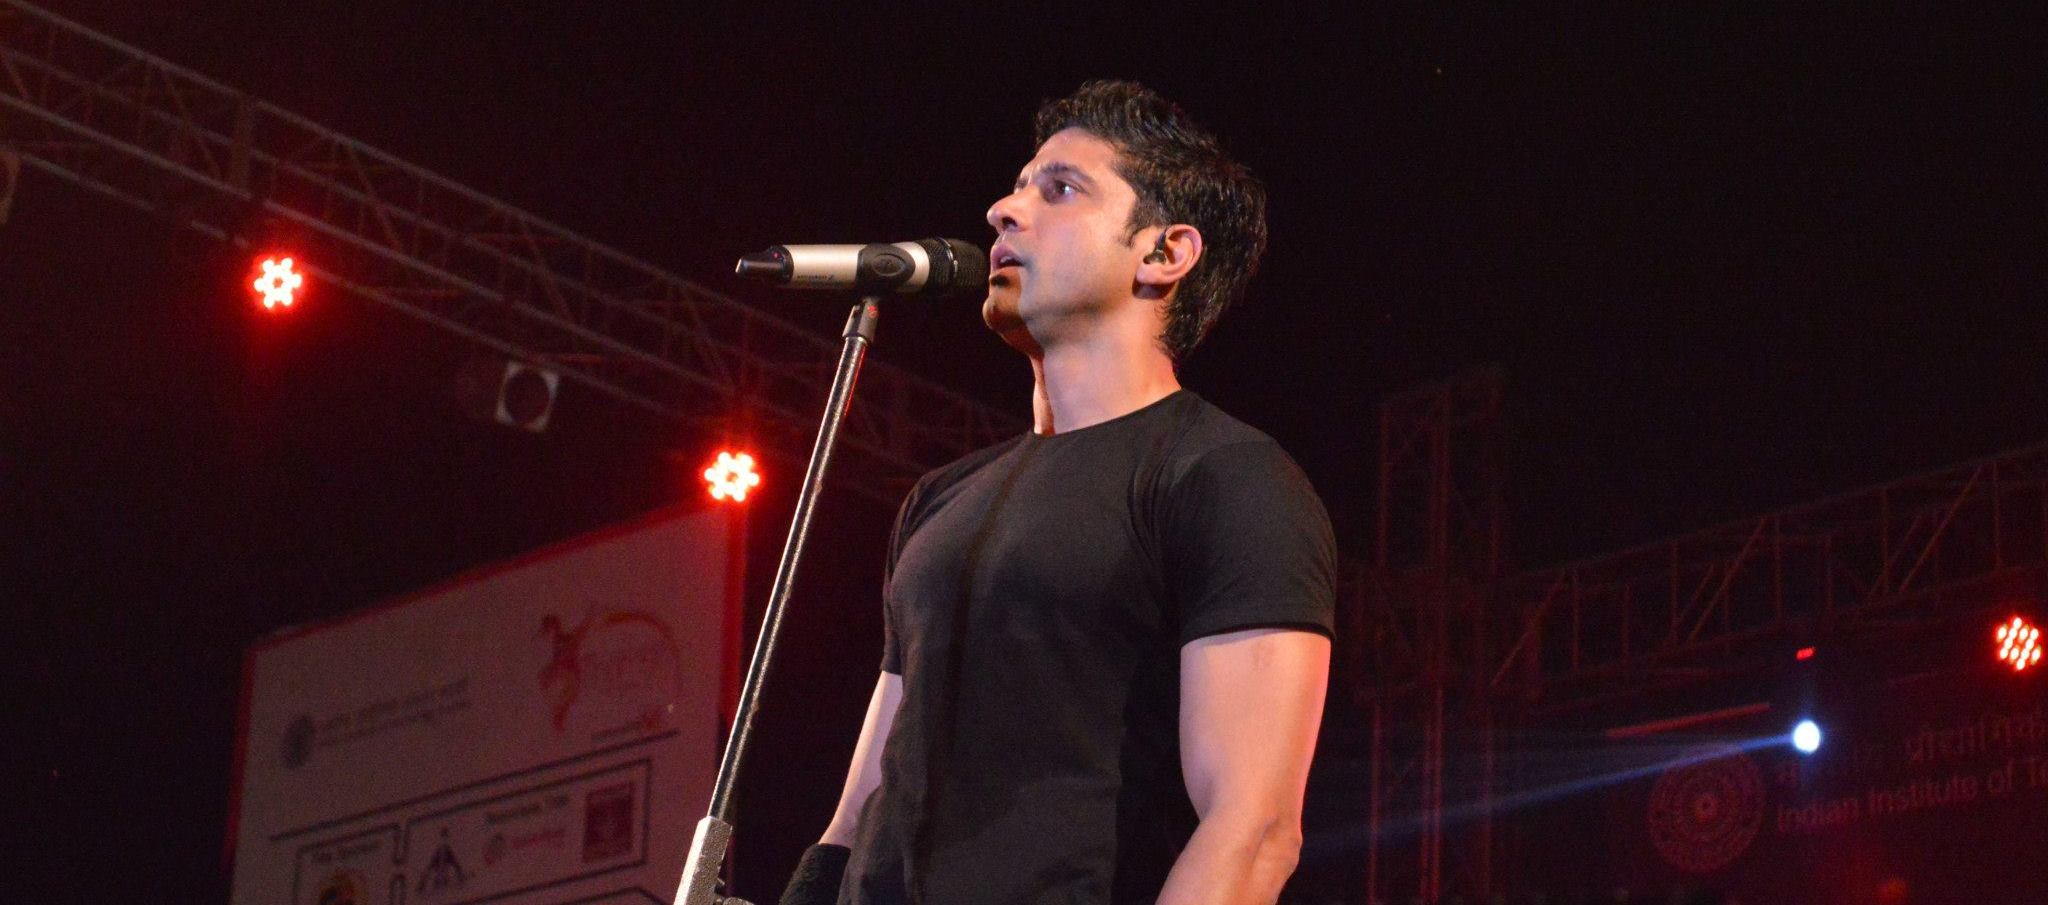 Farhan Akhtar performing at Thomso, IIT Roorkee's youth festival.